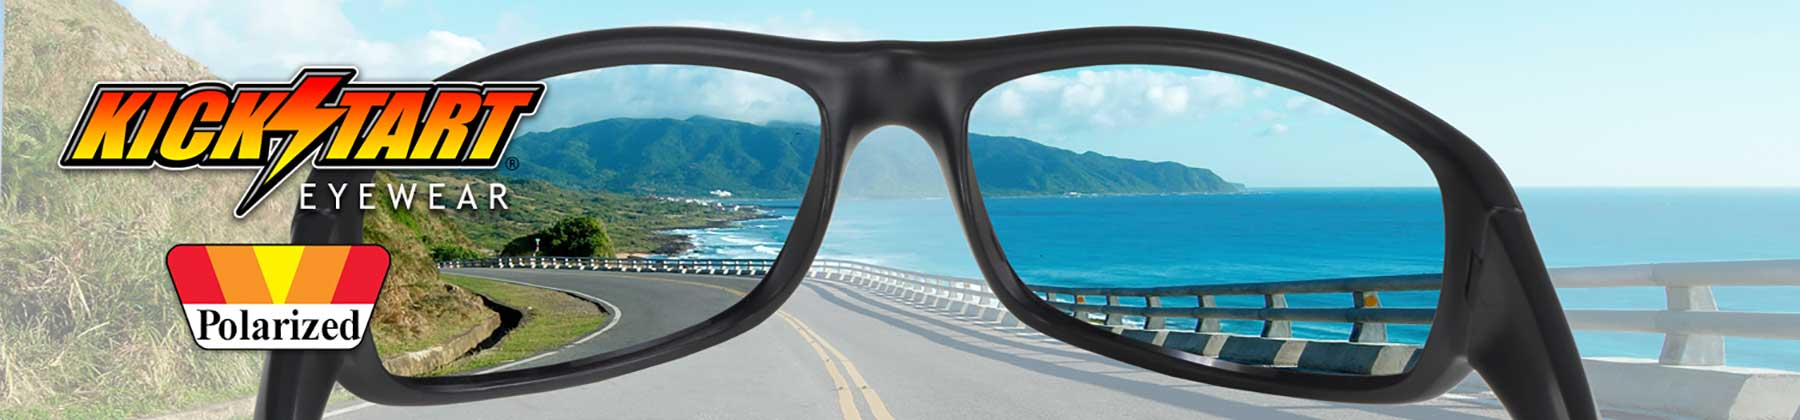 19c8e7081ae There s no doubt about it  Polarized sunglasses make a big difference in reducing  glare. Many customers look for polarized sunglasses because they want to ...